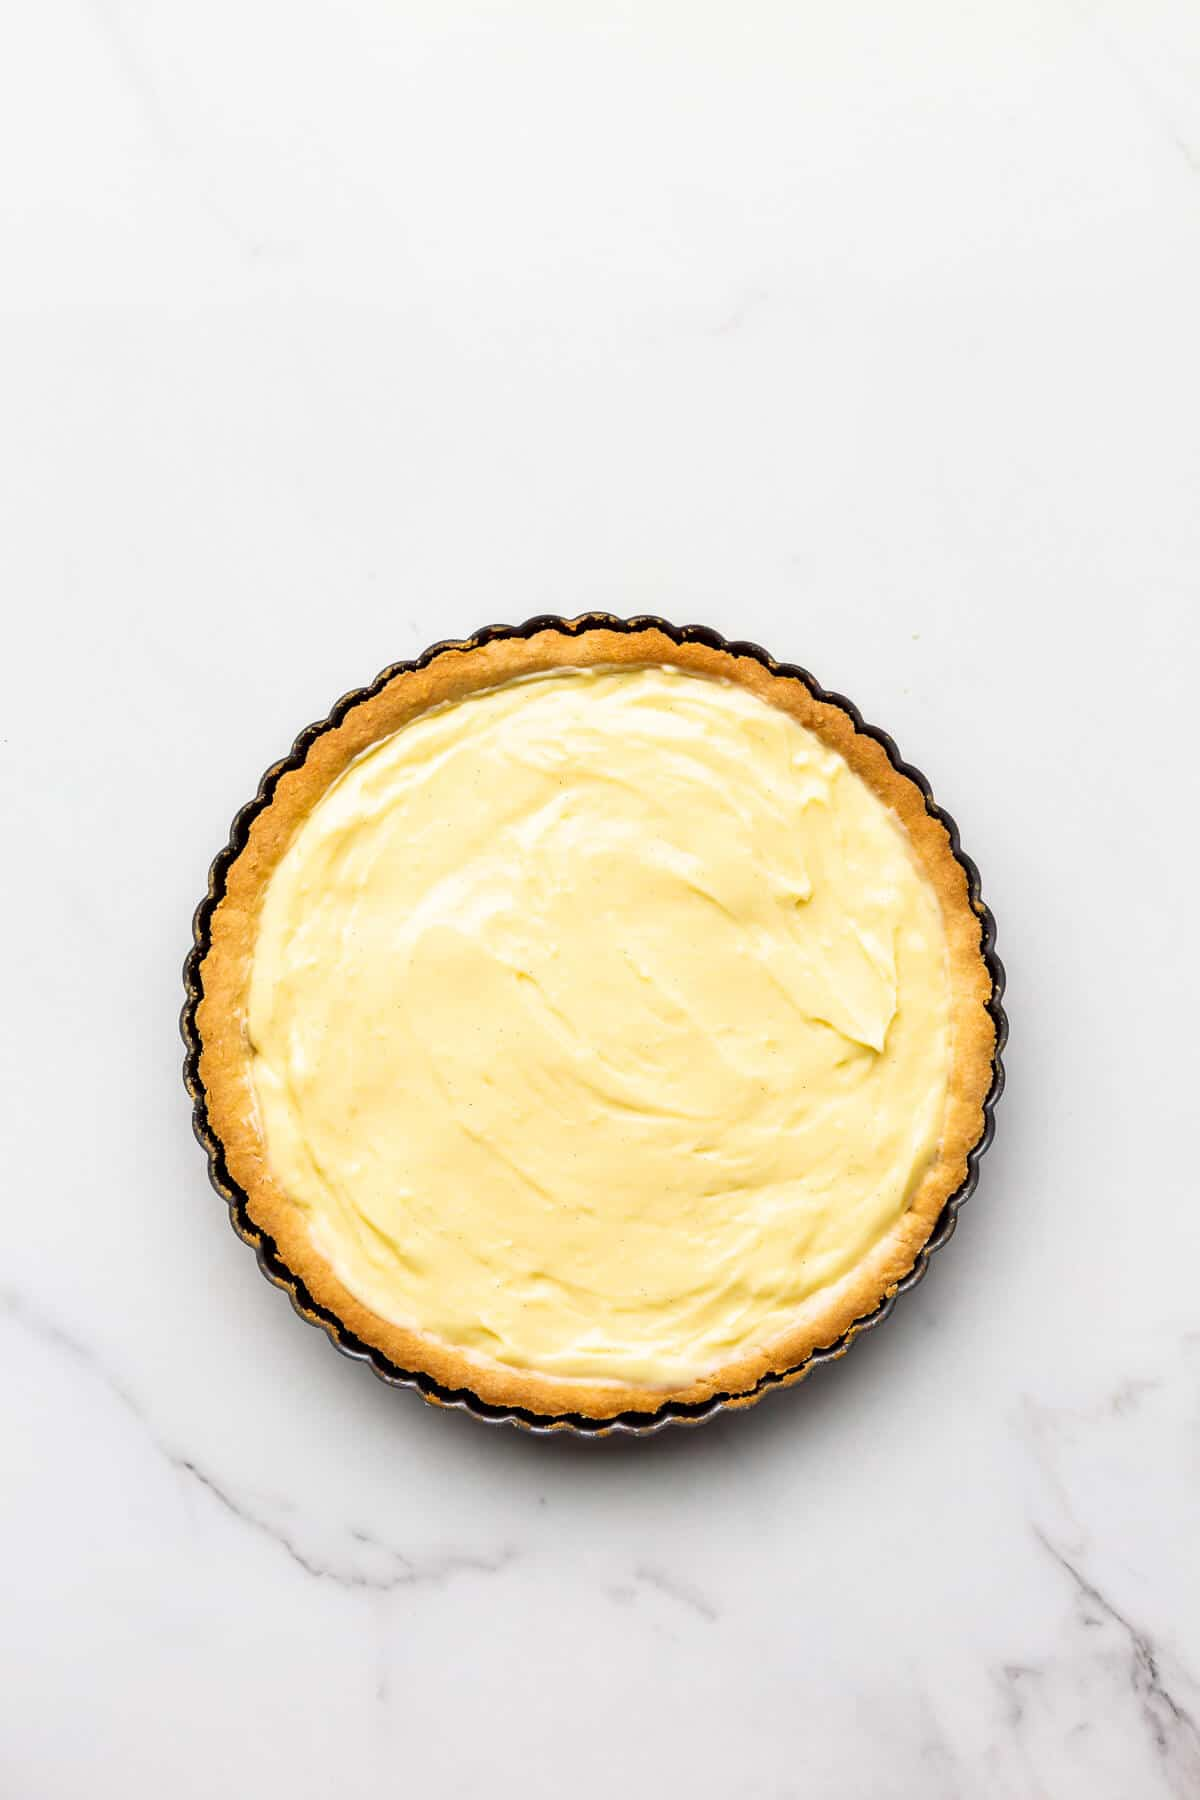 Baked tart shell filled with pastry cream.